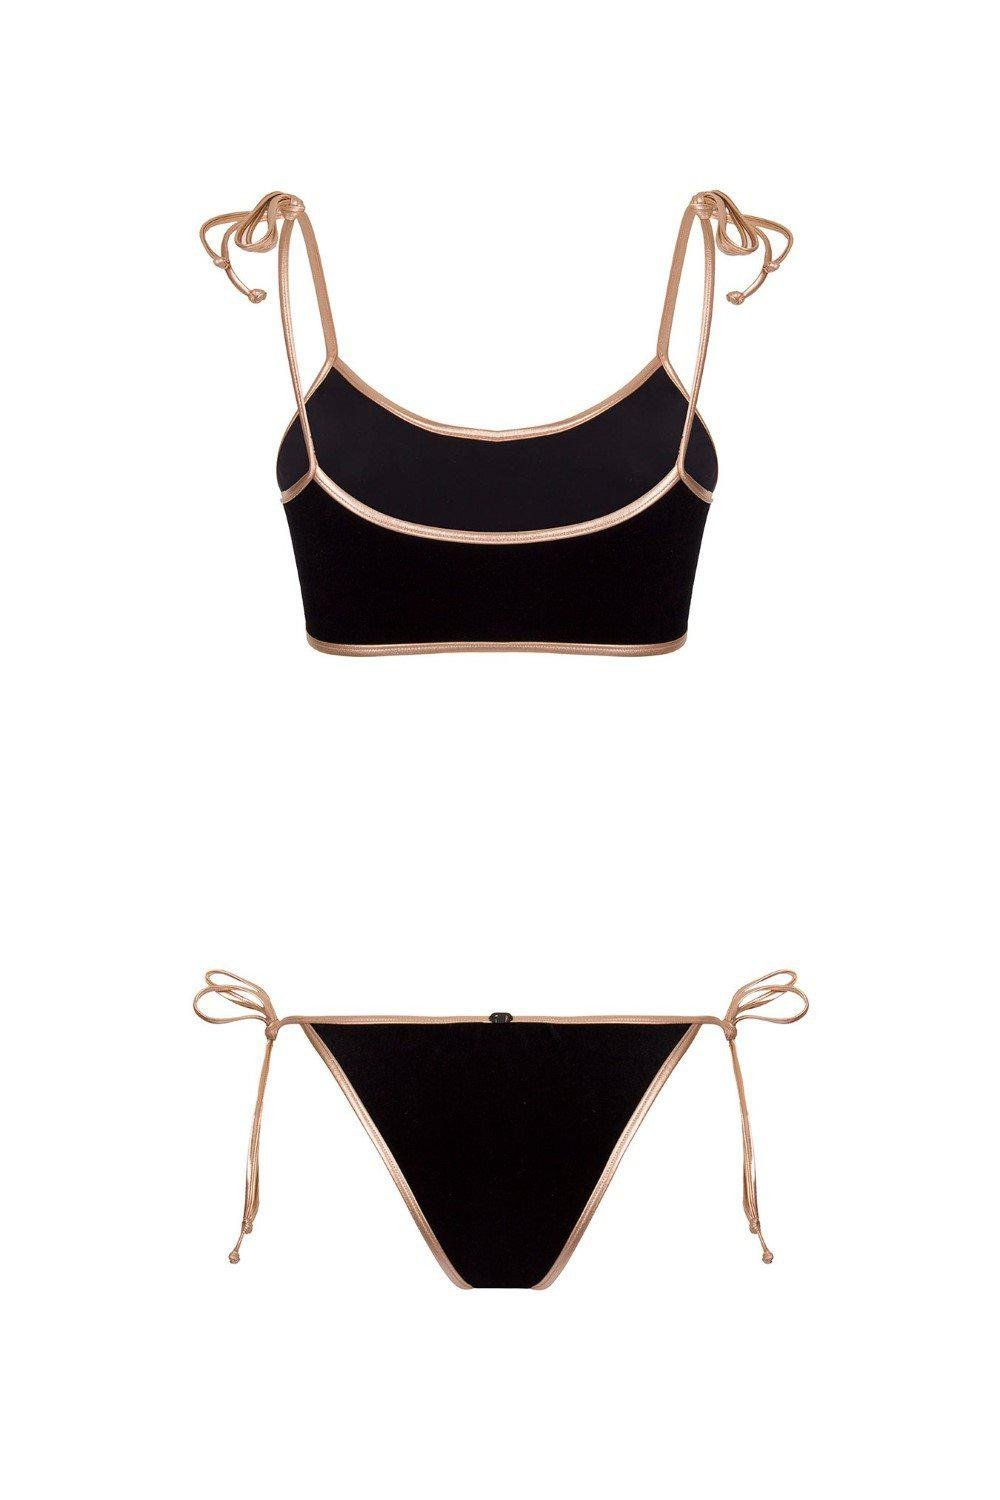 Cavaliere Velvet Bikini with Straps and Gold Detail 2